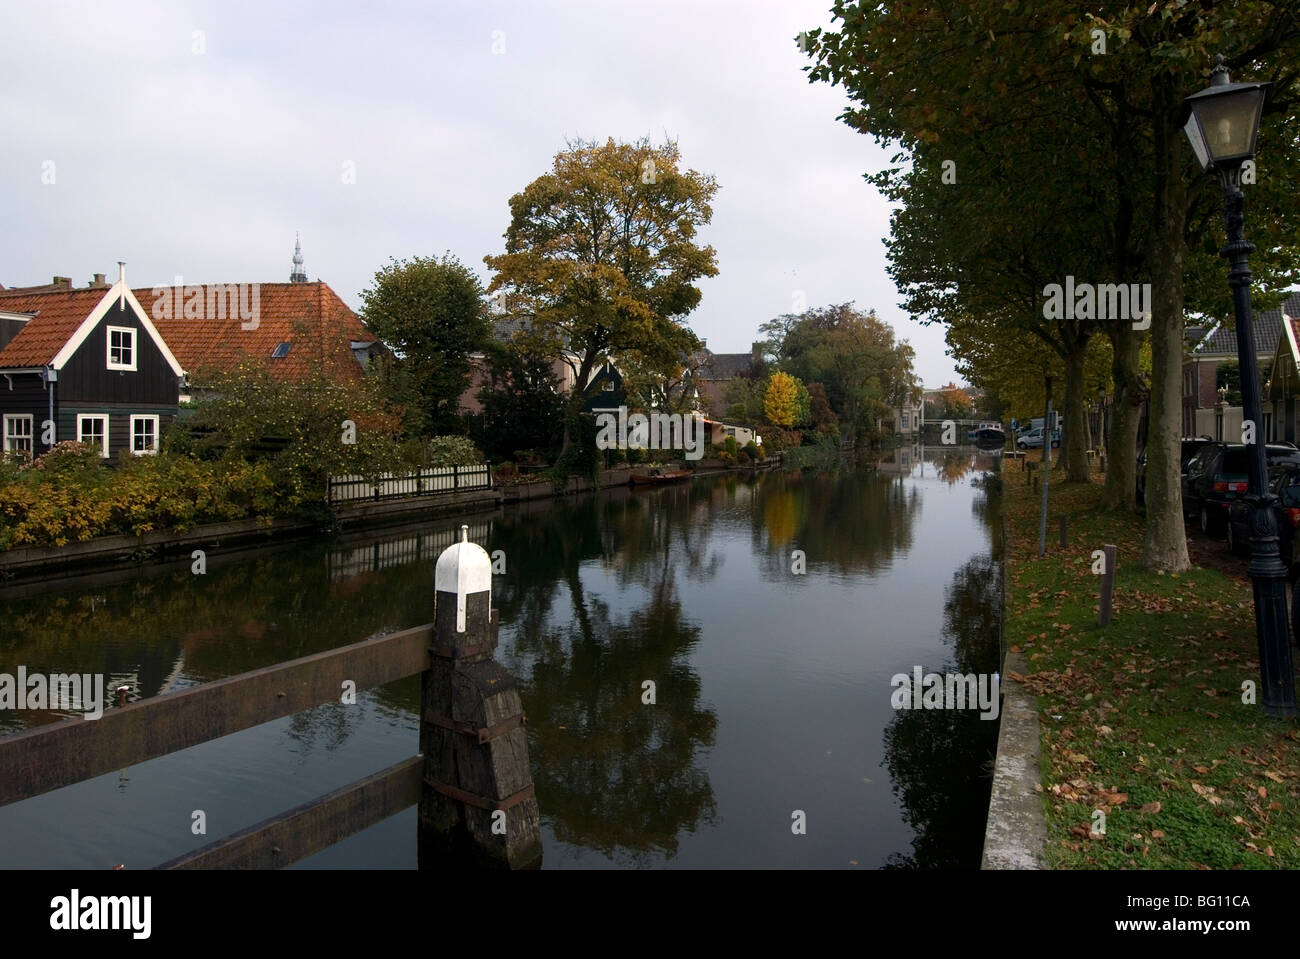 Main canal, outskirts of Edam, Netherlands, Europe - Stock Image